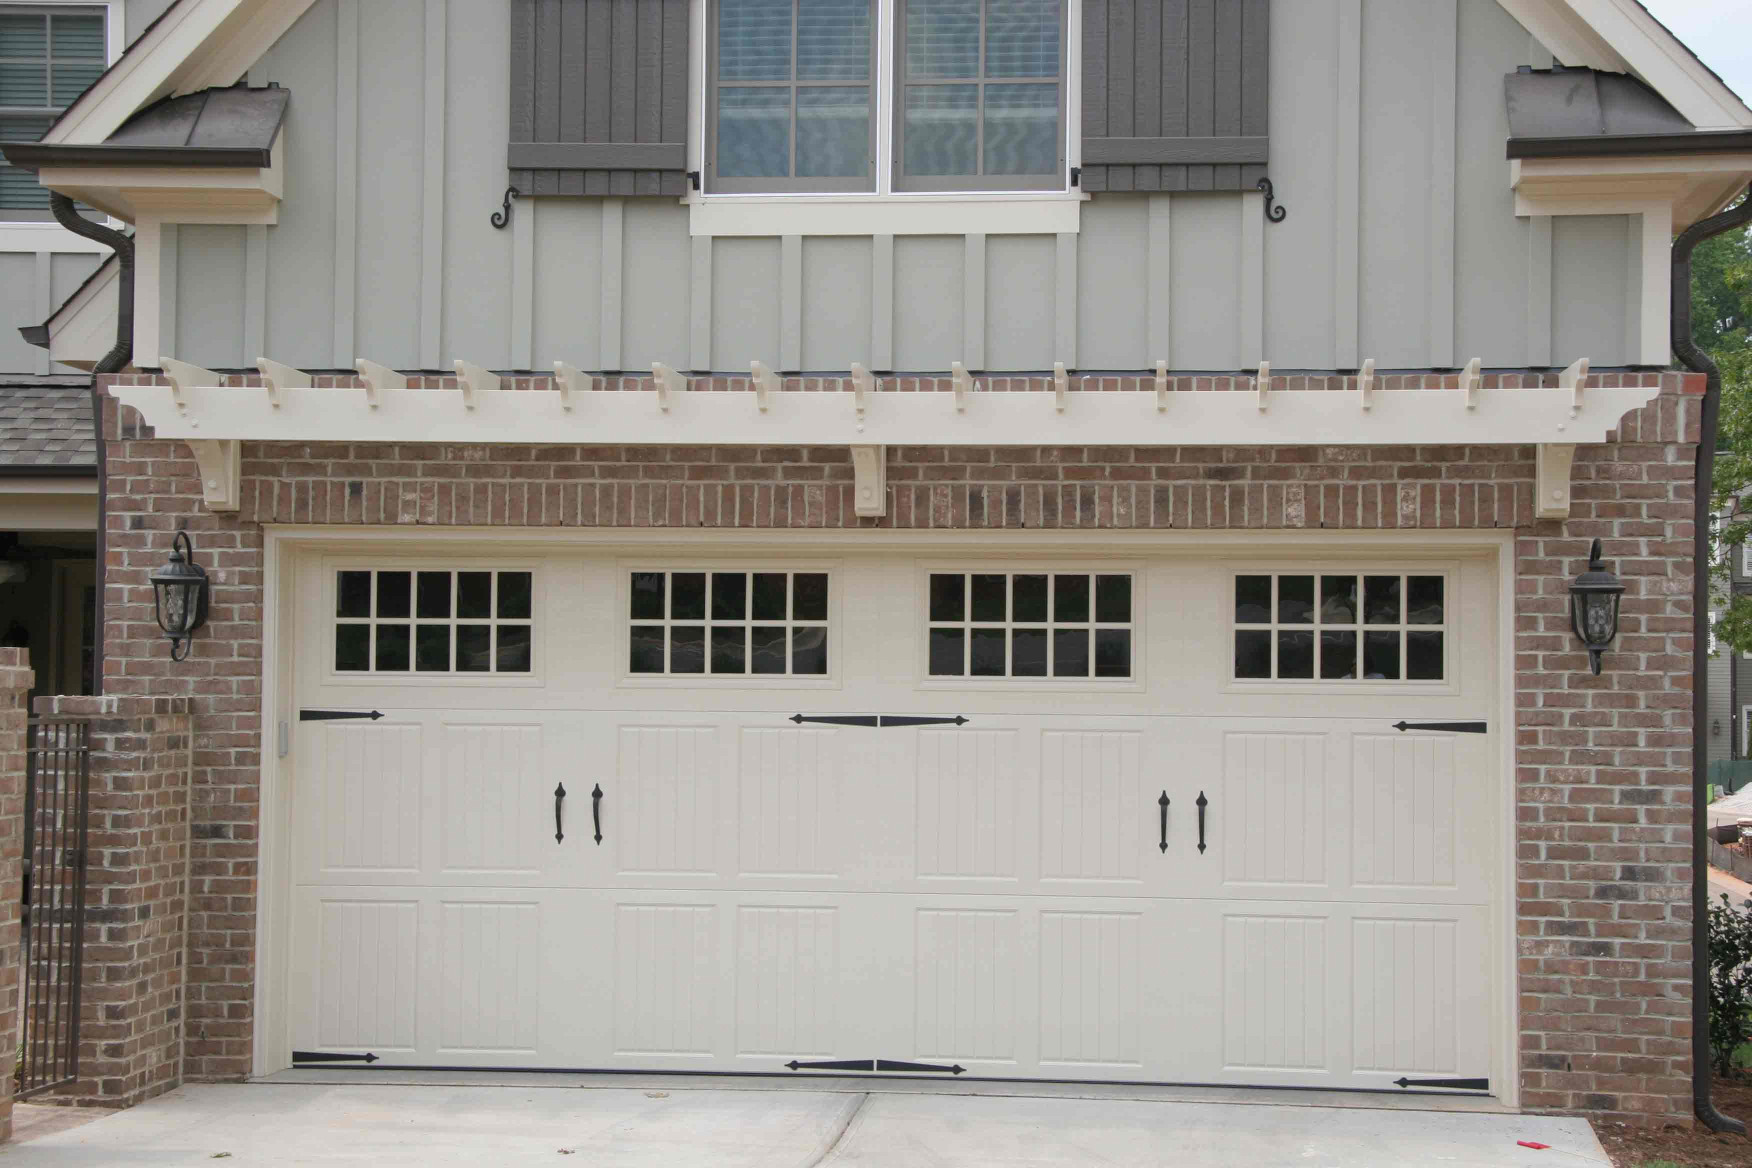 This wood trellis over a garage entry is an excellent addition to this home.